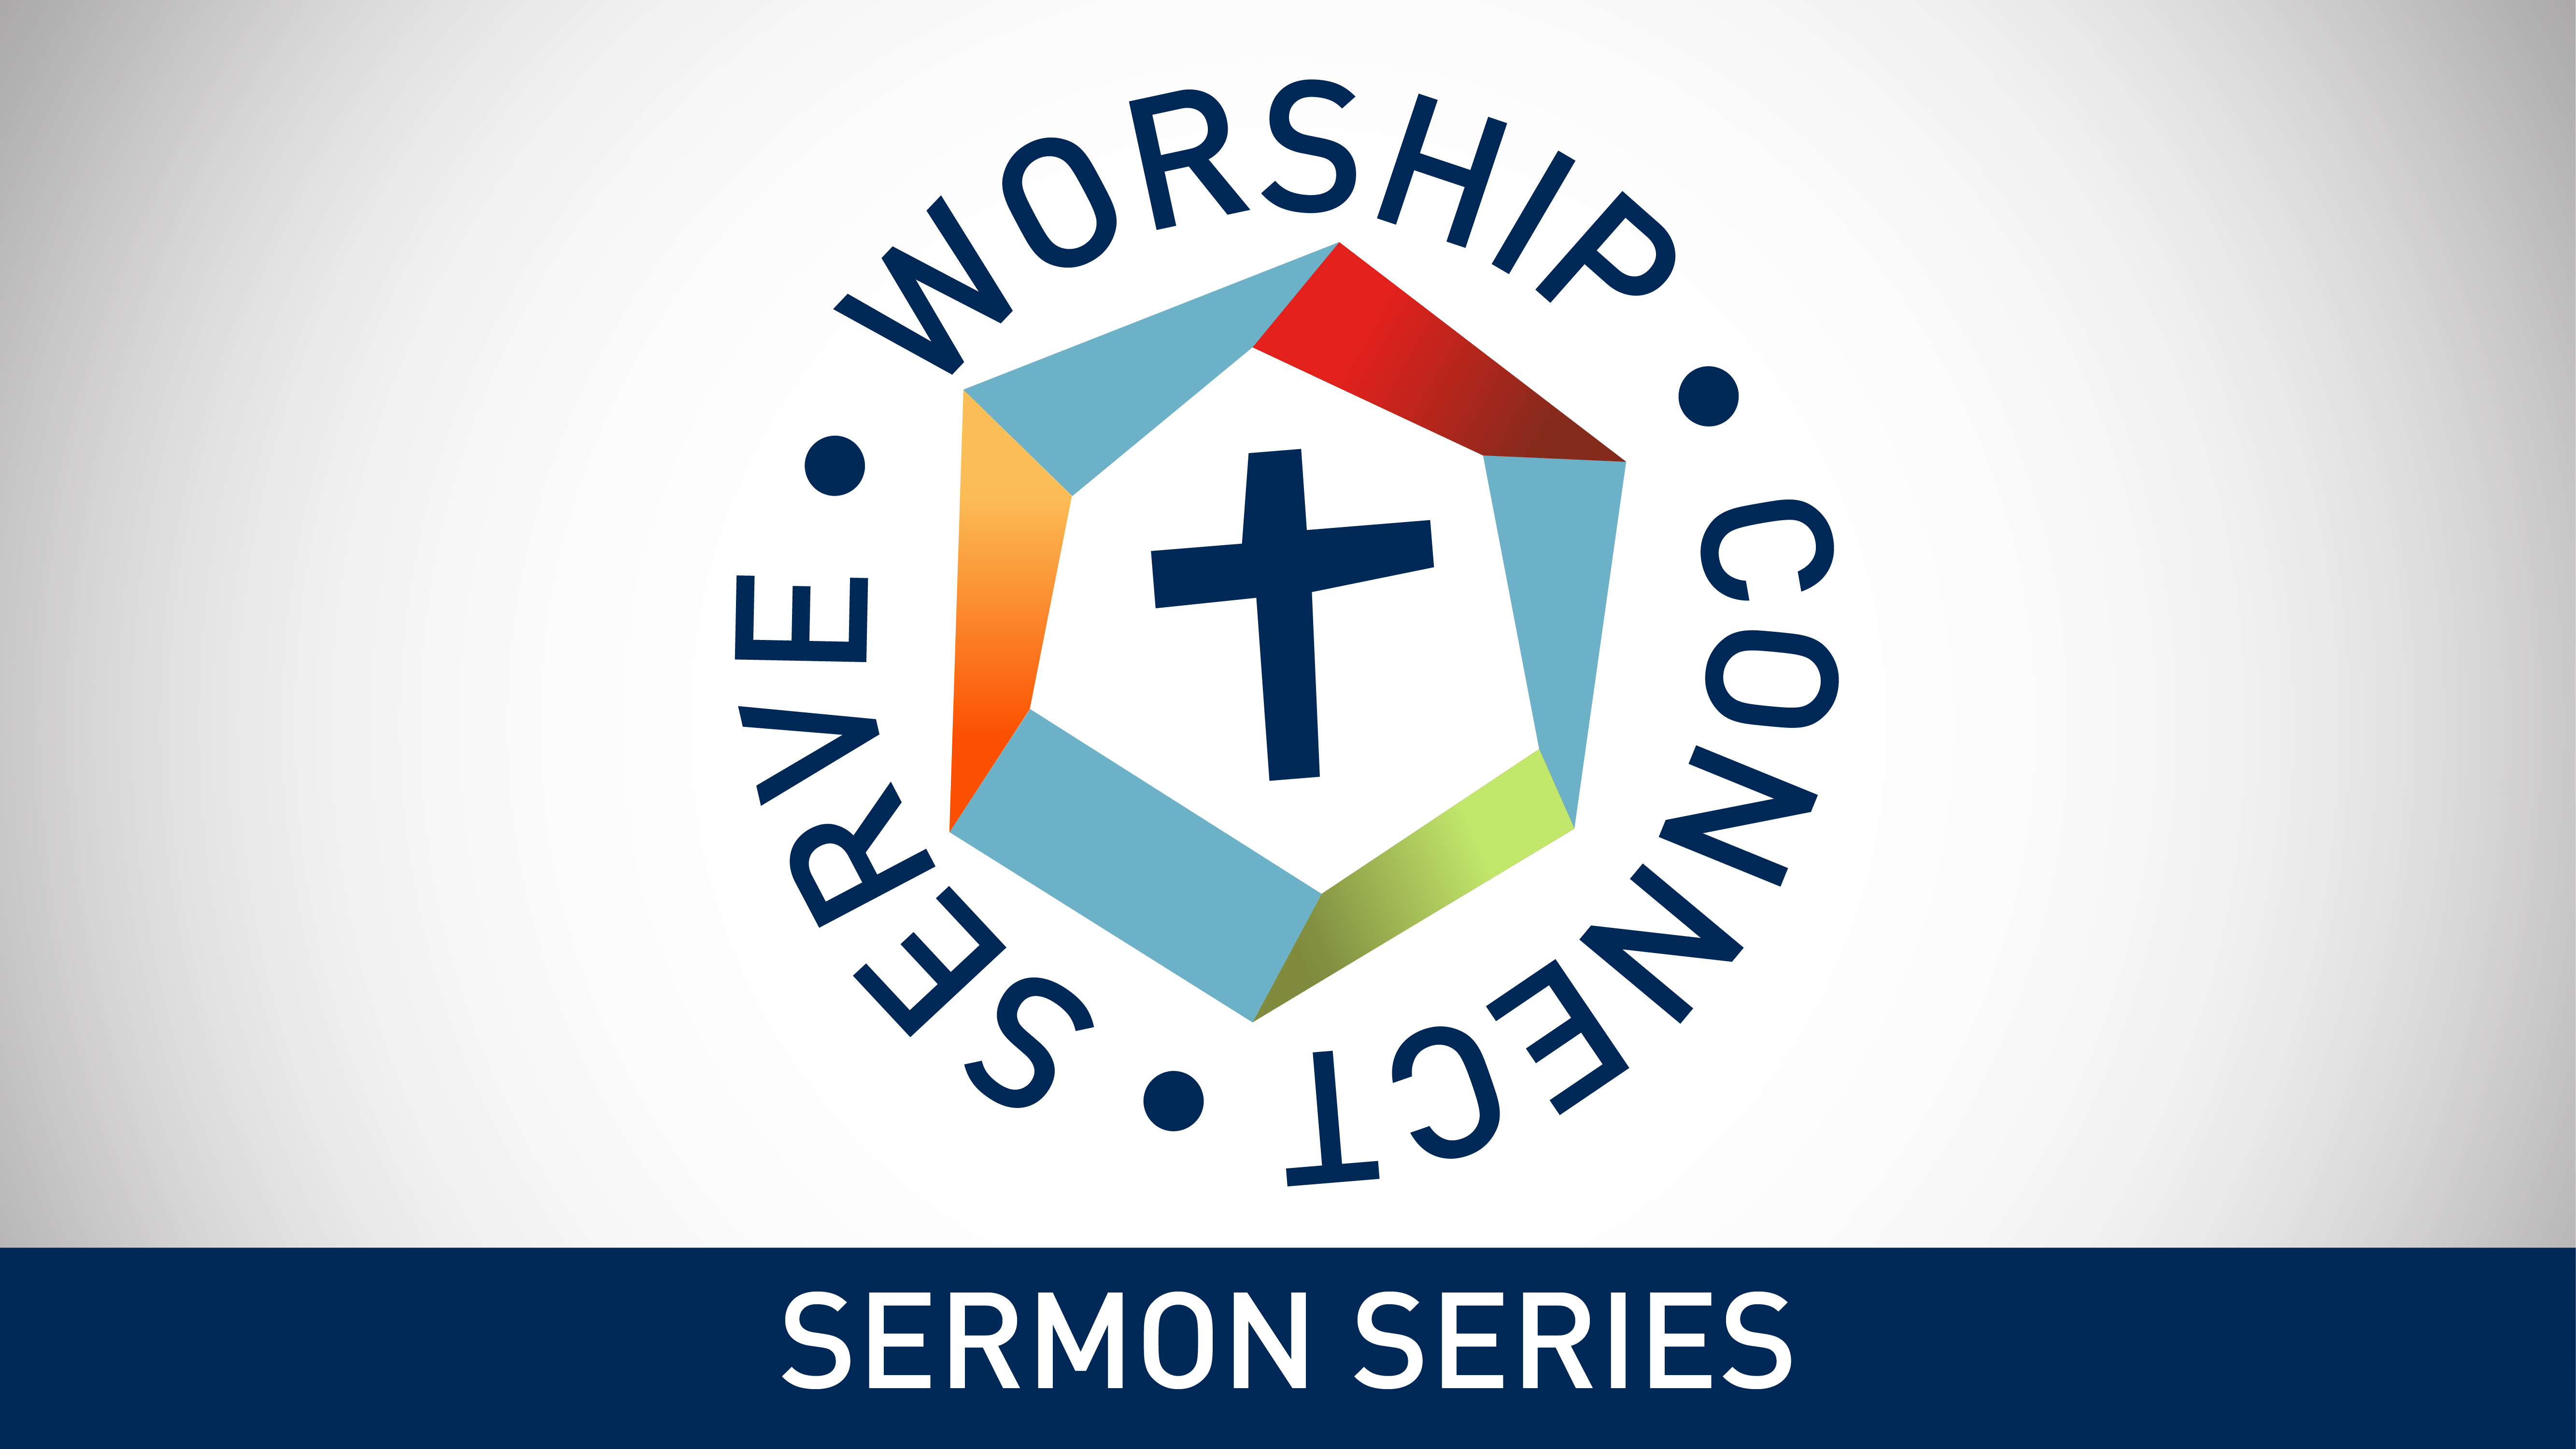 Worship-Connect-Serve